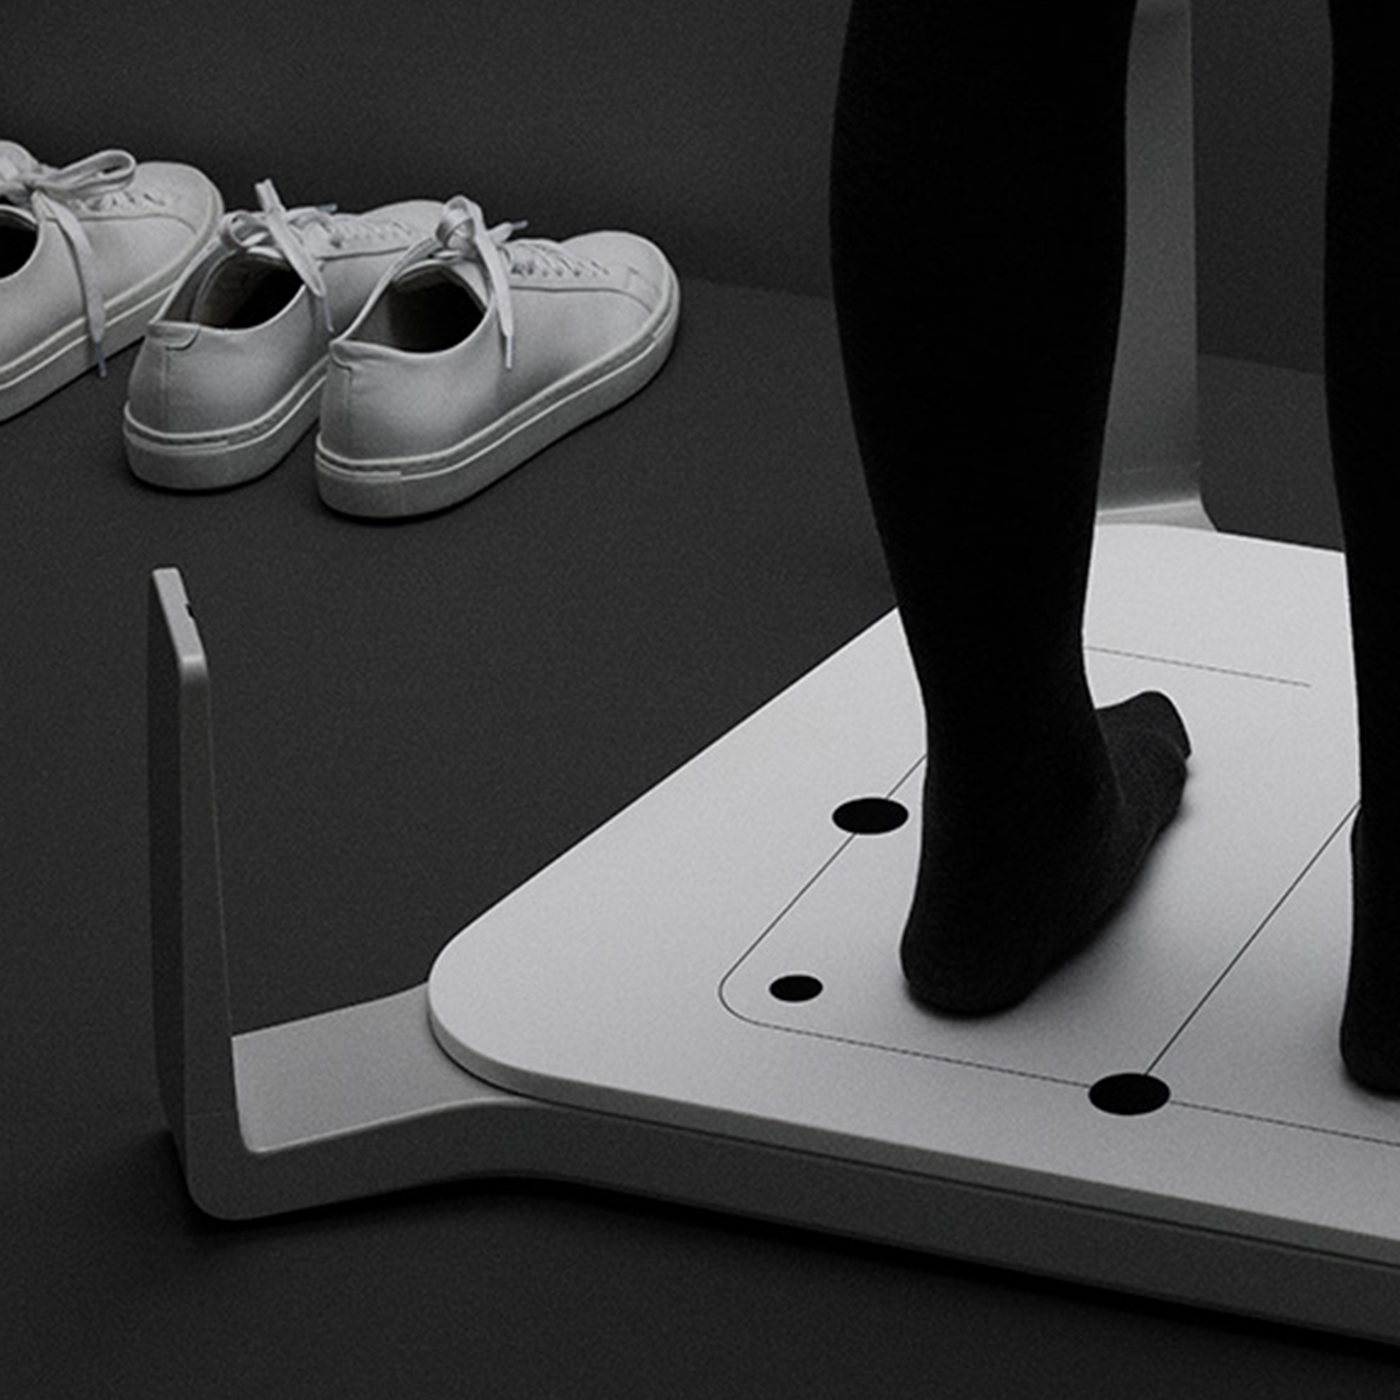 Volumental  Shoe fit is just a number  Industrial design, UX, Engineering, Prototyping, Production setup